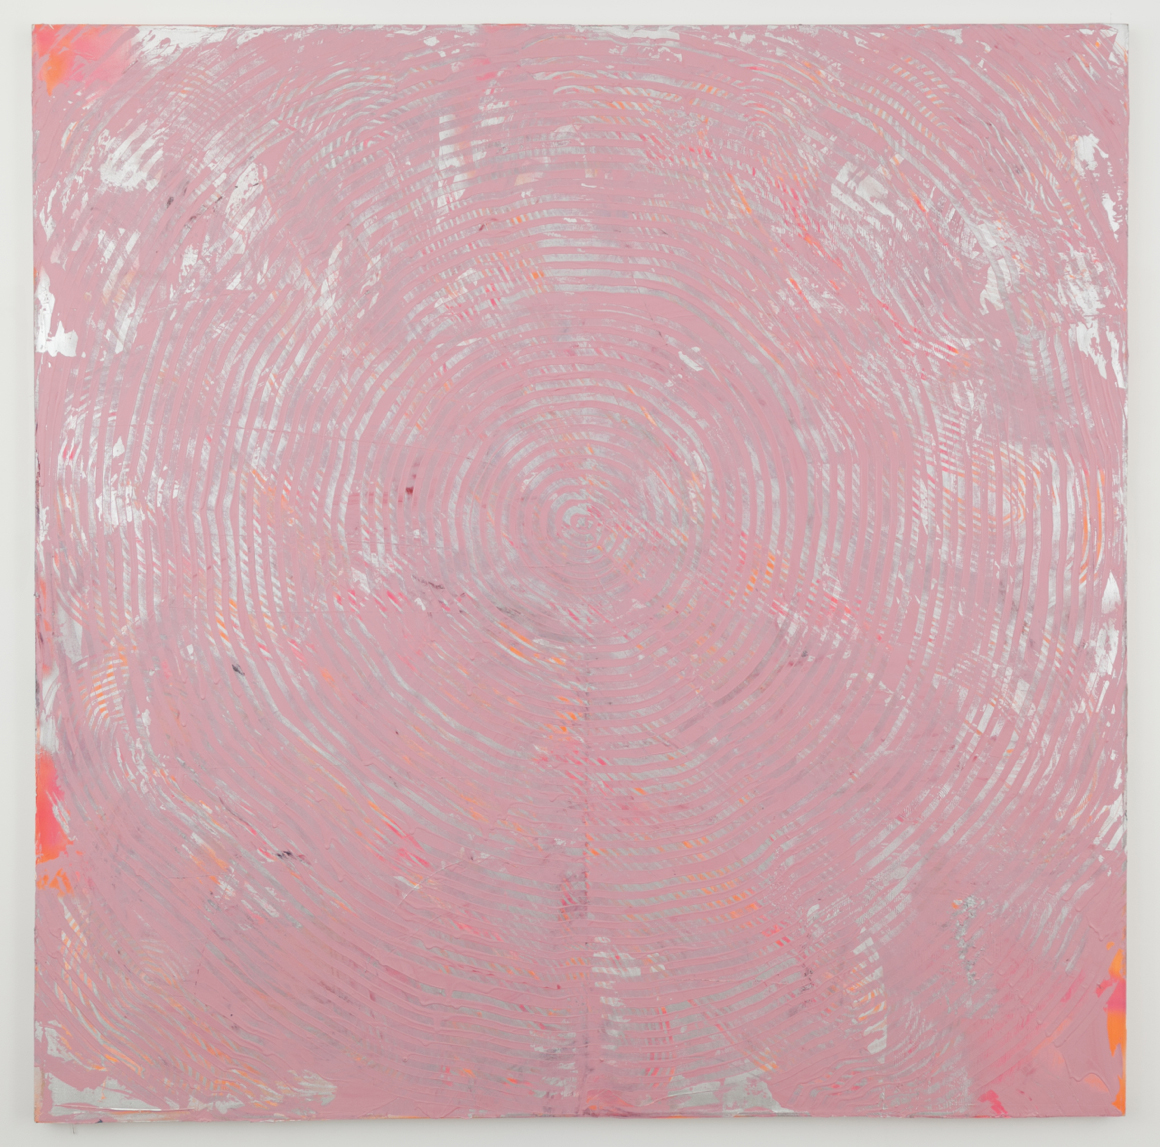 "<p><span class=""name"">Adam Bateman</span><br><em>Pink and Silver</em><span class='media'>acrylic and spray paint on canvas</span>72 x 72in<br>2014<br><a class='inquire' href='mailto:info@gildargallery.com?subject=Artwork Inquiry ABAT0006&body=I am interested in finding out more about Pink and Silver by Adam Bateman'>Inquire</a></p>"